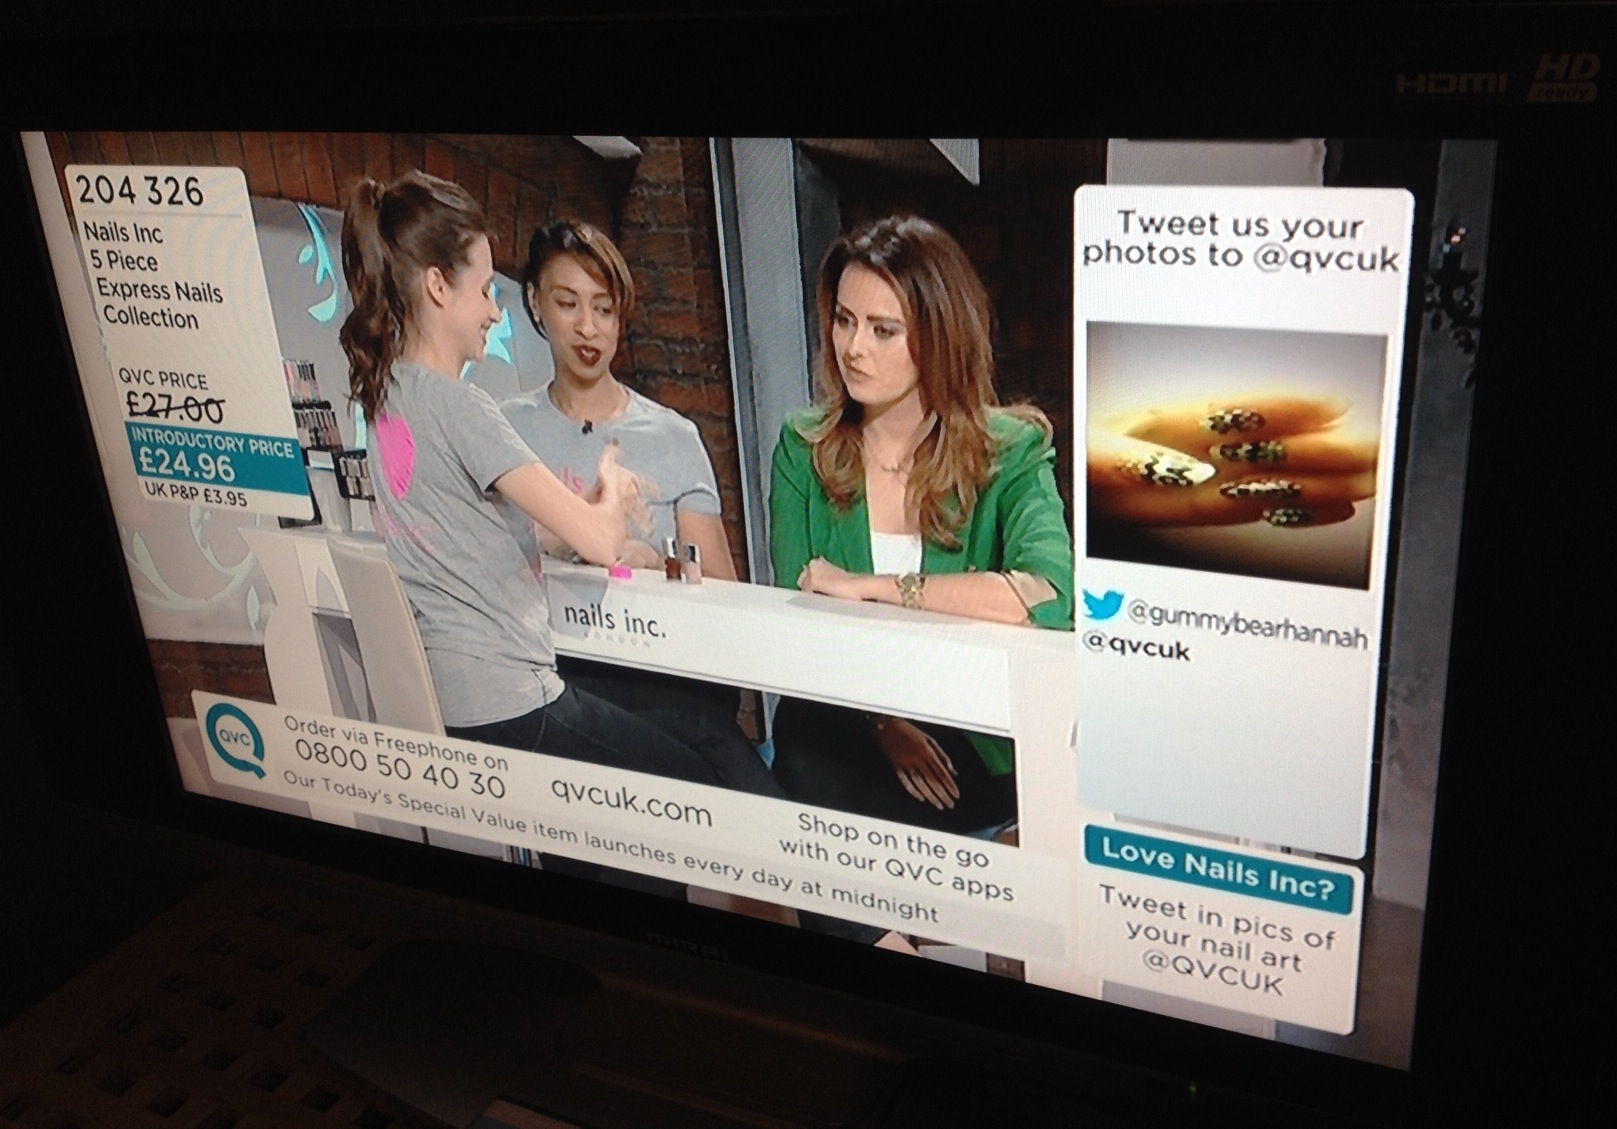 Live tweets on QVC recommending the product they are selling